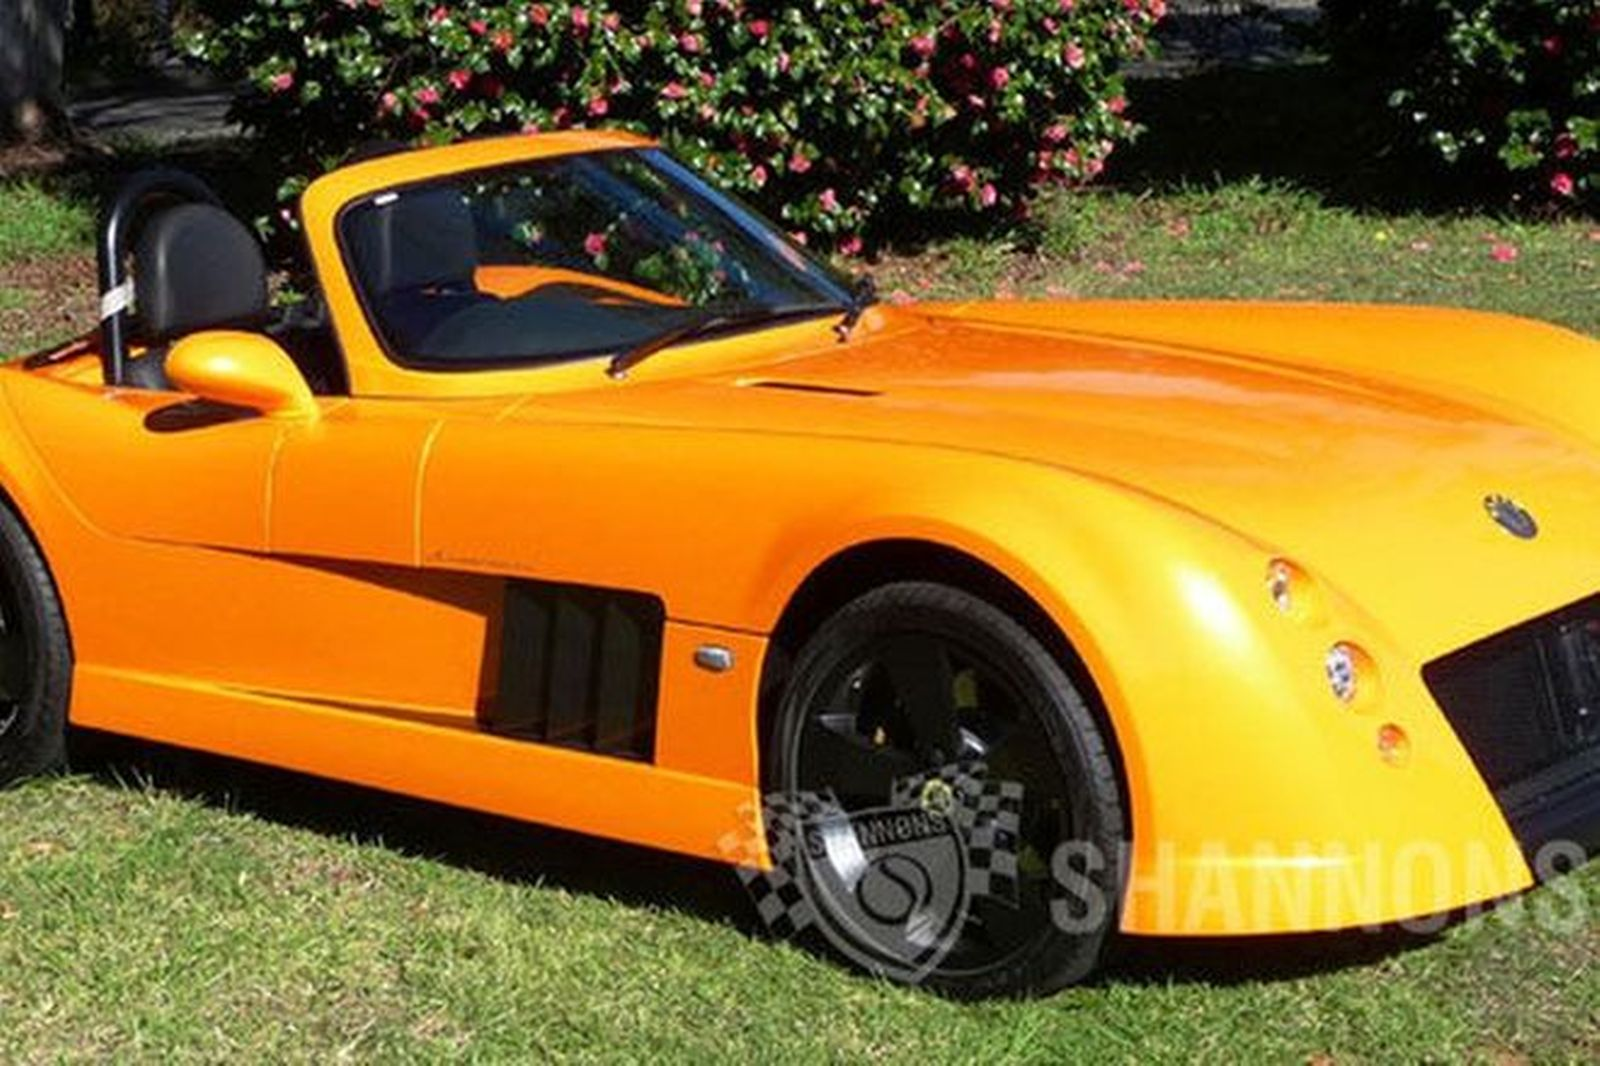 Sold elfin ms8 streamliner auctions lot 23 shannons for Motor vehicle open on saturday